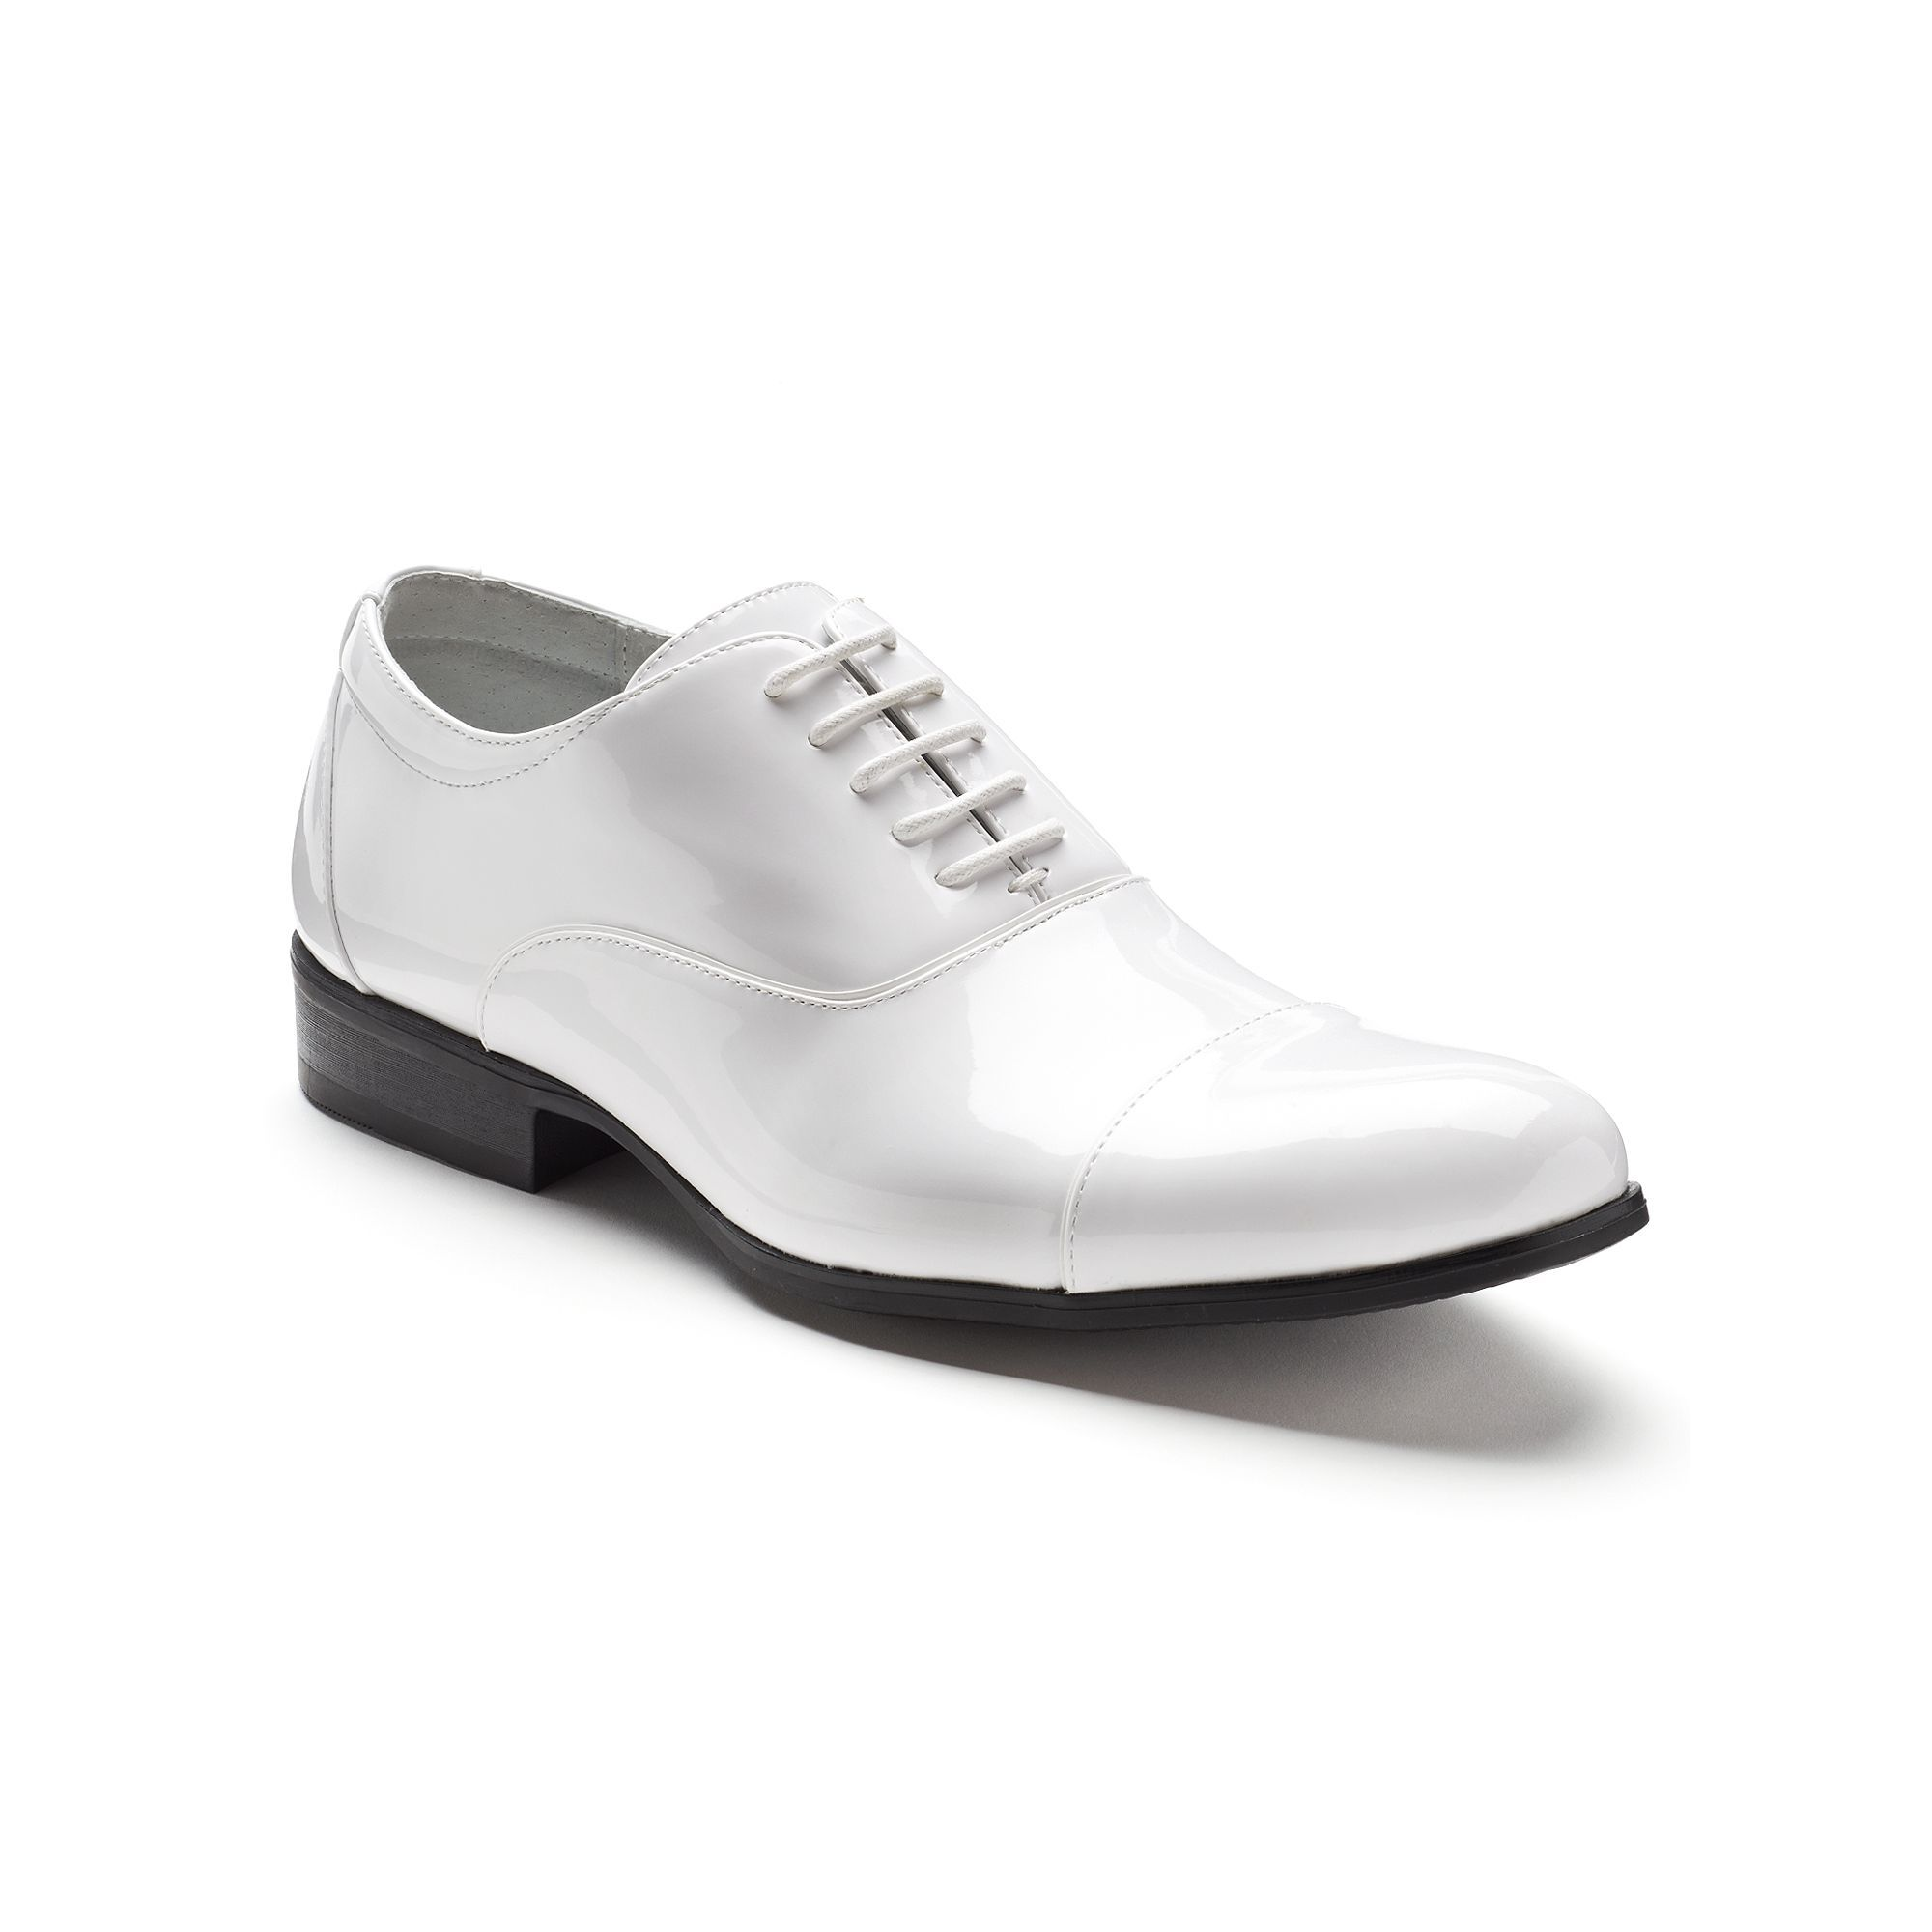 a372f0eb607 Stacy Adams Gala Men's Oxford Dress Shoes in 2019 | Products | Dress ...